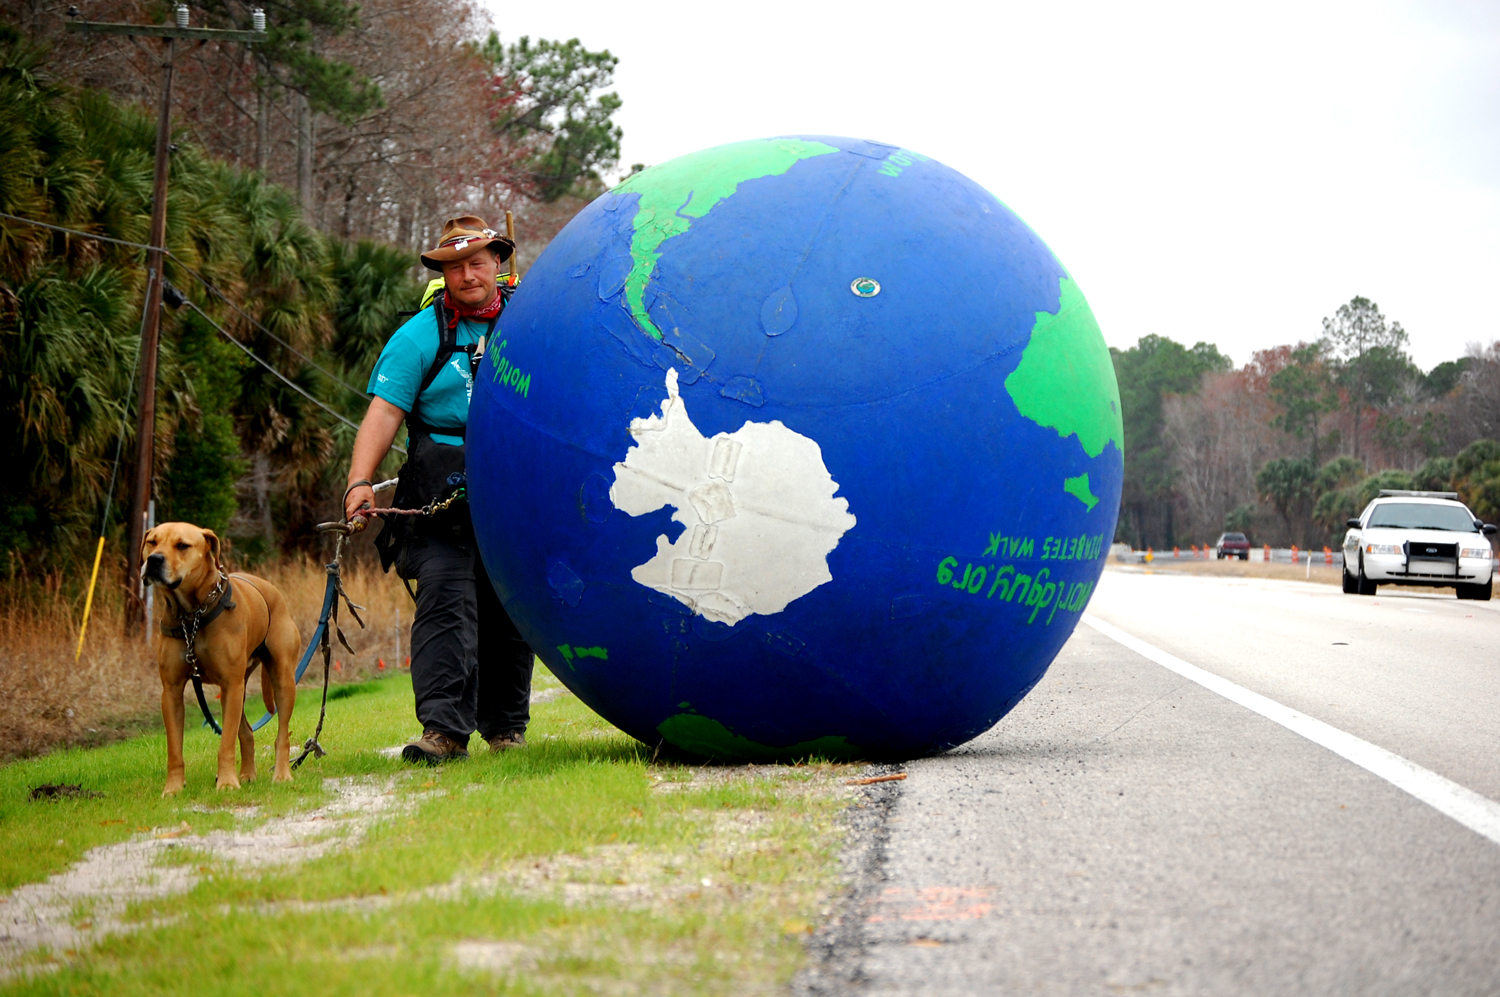 Erik Bendl, the World Guy, and his dog Nice, doing Bunnell. Click on the image for larger view. (© FlaglerLive)